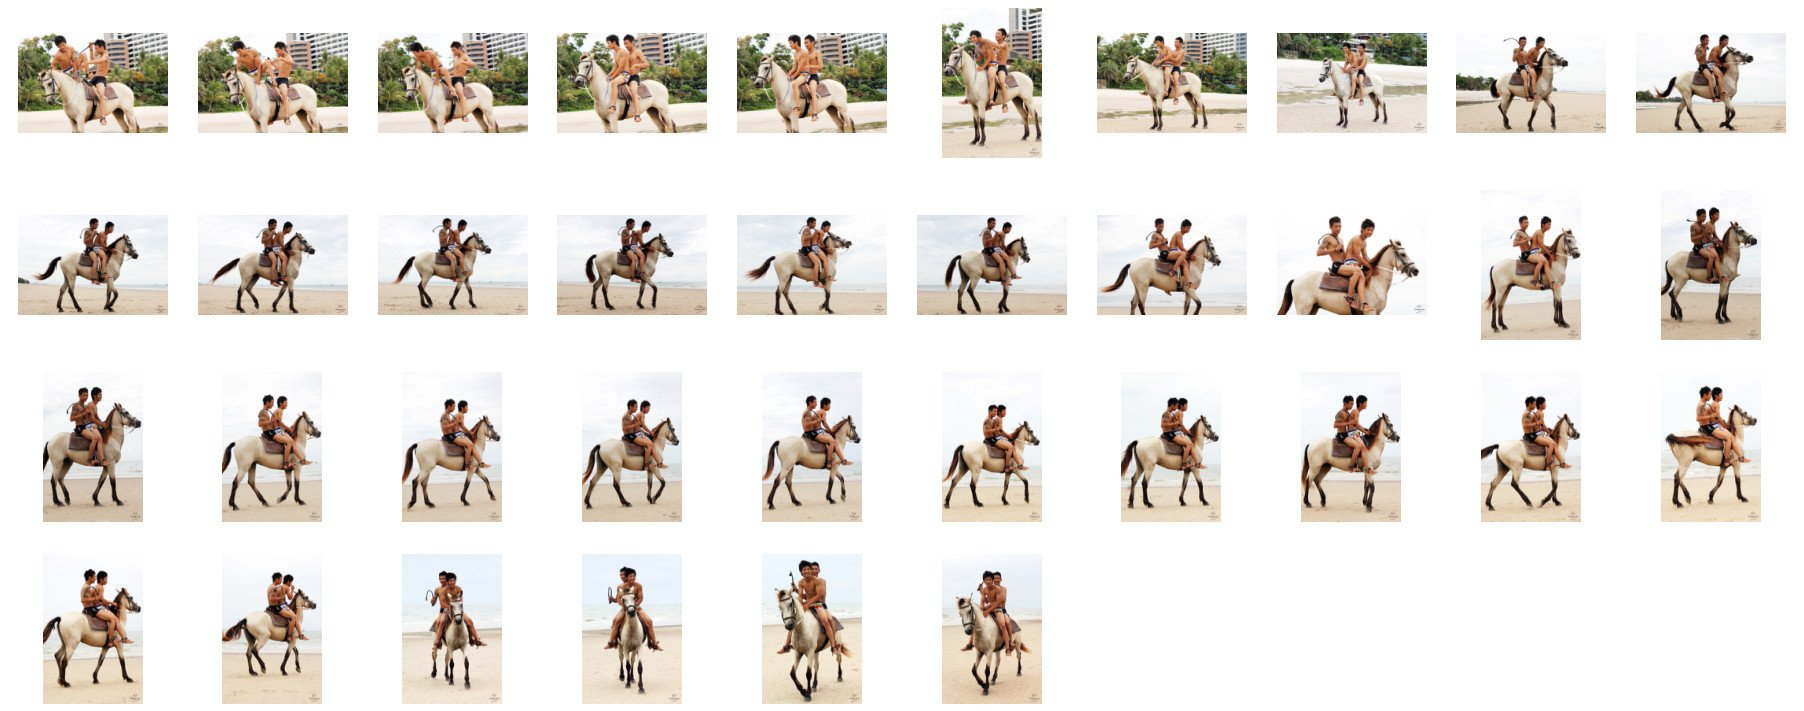 David and Thaksin in Shorts Riding Double with Saddle on Buckskin Horse, Part 9 - Riding.Vision